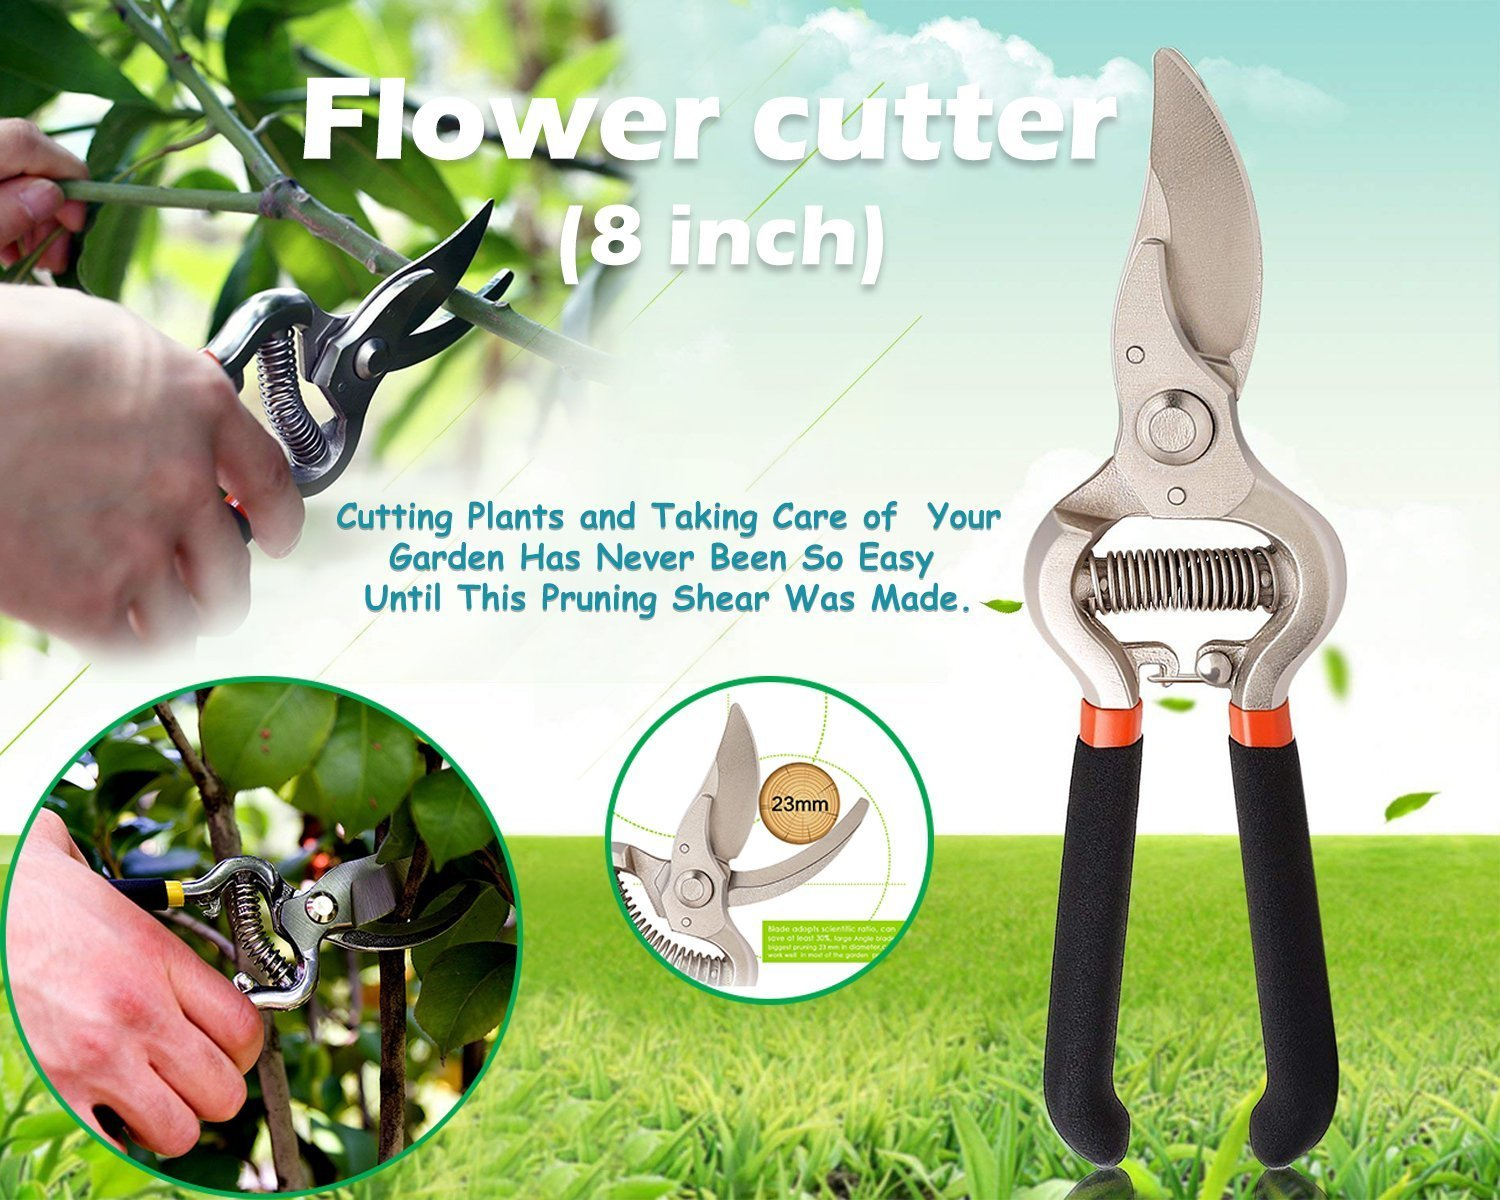 Your Brand Gardening Tools - Water Lever Spray Gun | Cultivator, Small Trowel, Garden Fork | Pressure Garden Spray Bottle | Genie Gloves | Garden Shears Pruners Scissor (8-inch)